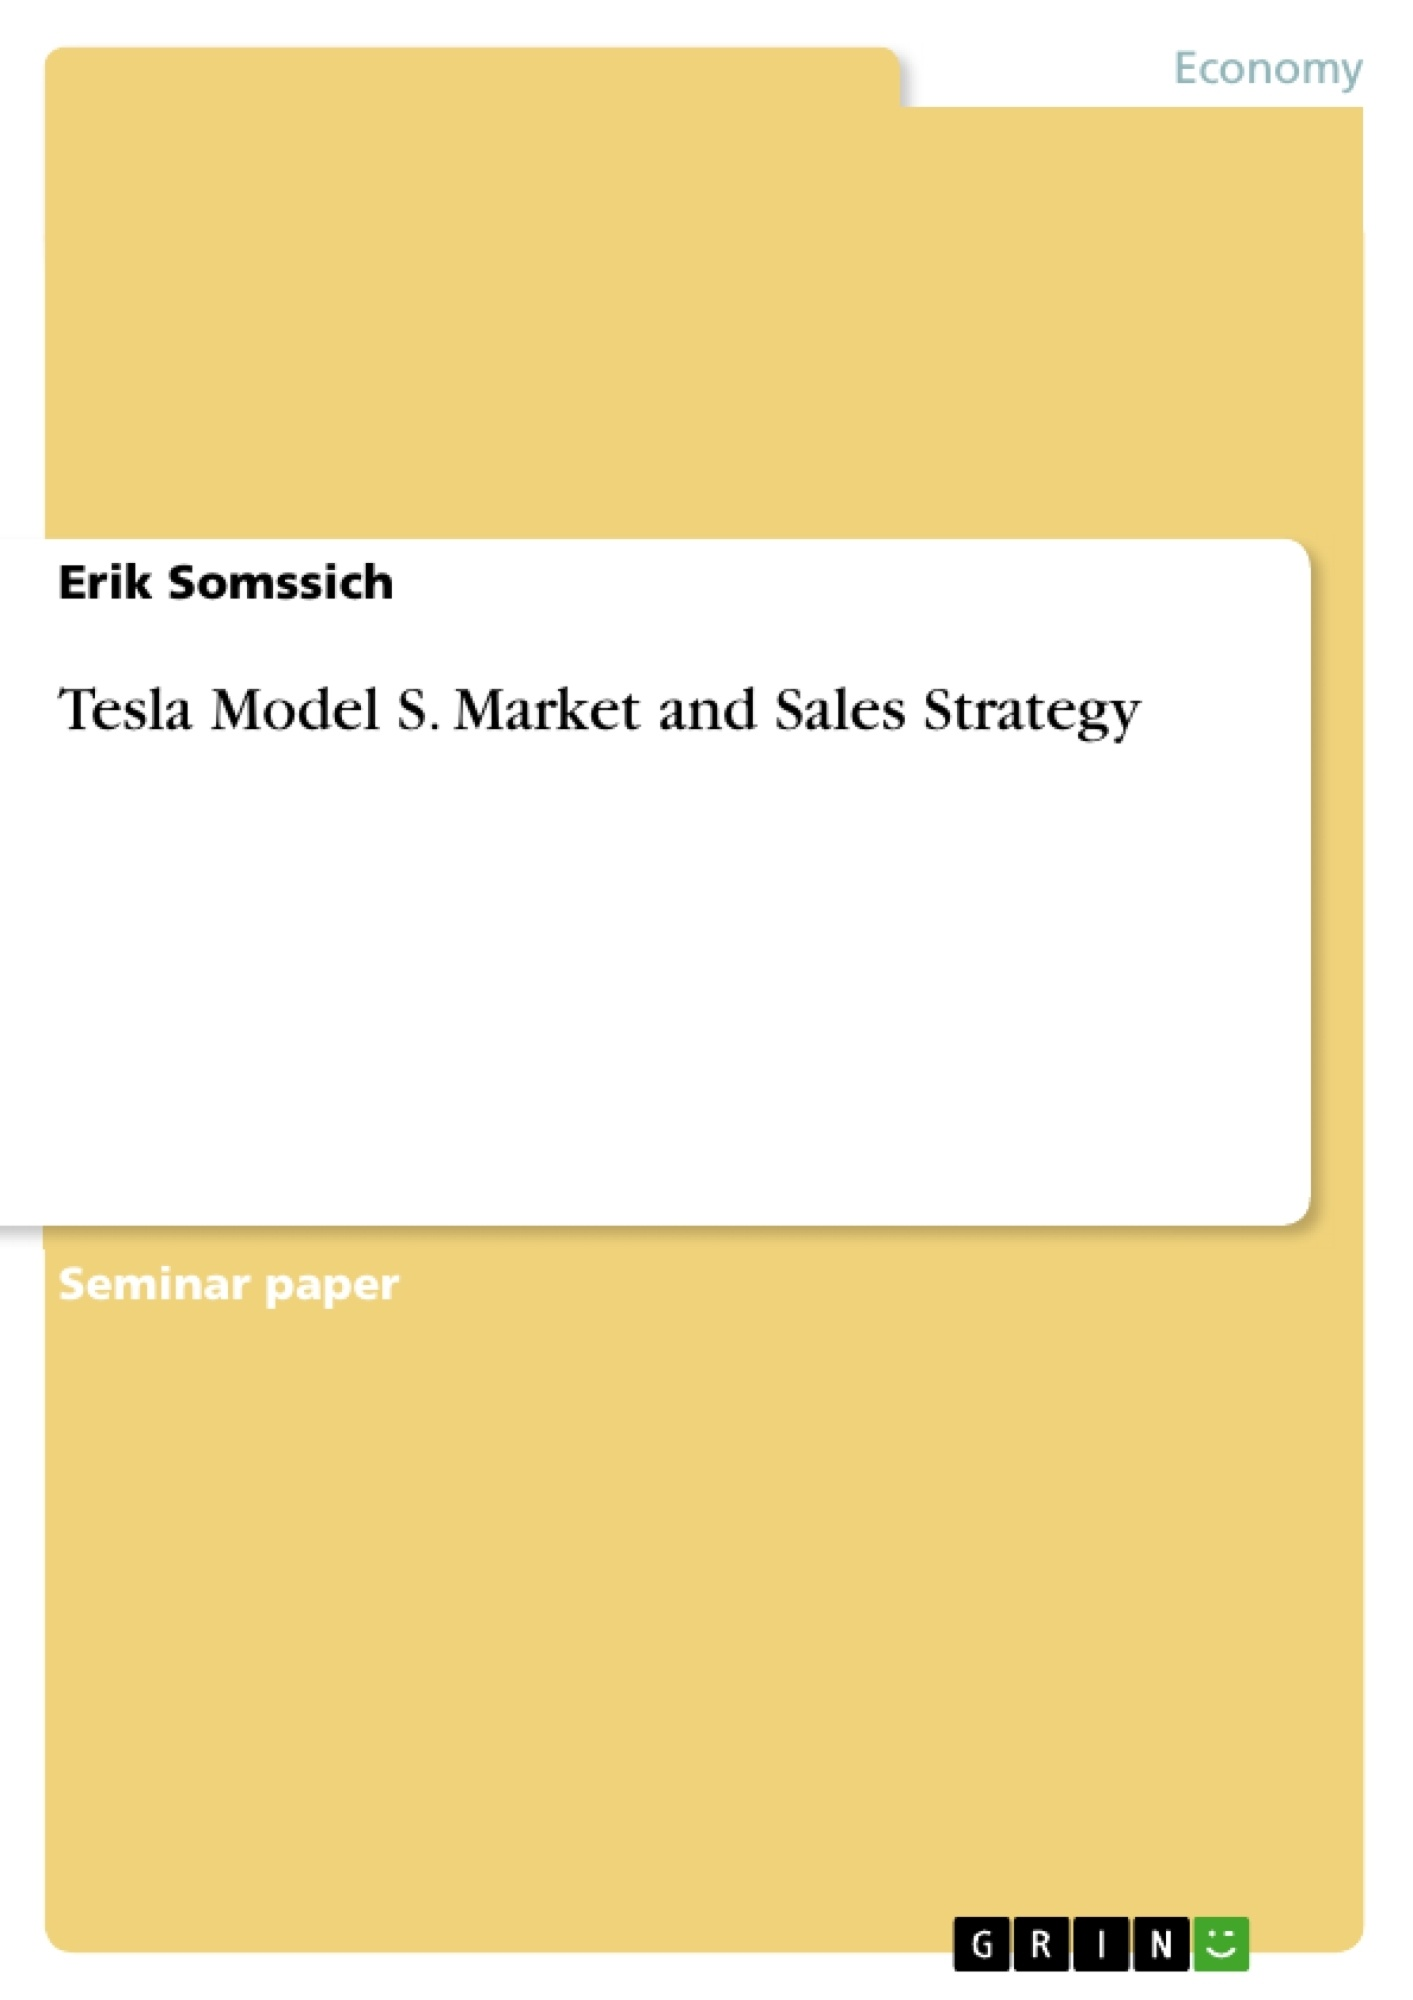 Title: Tesla Model S. Market and Sales Strategy